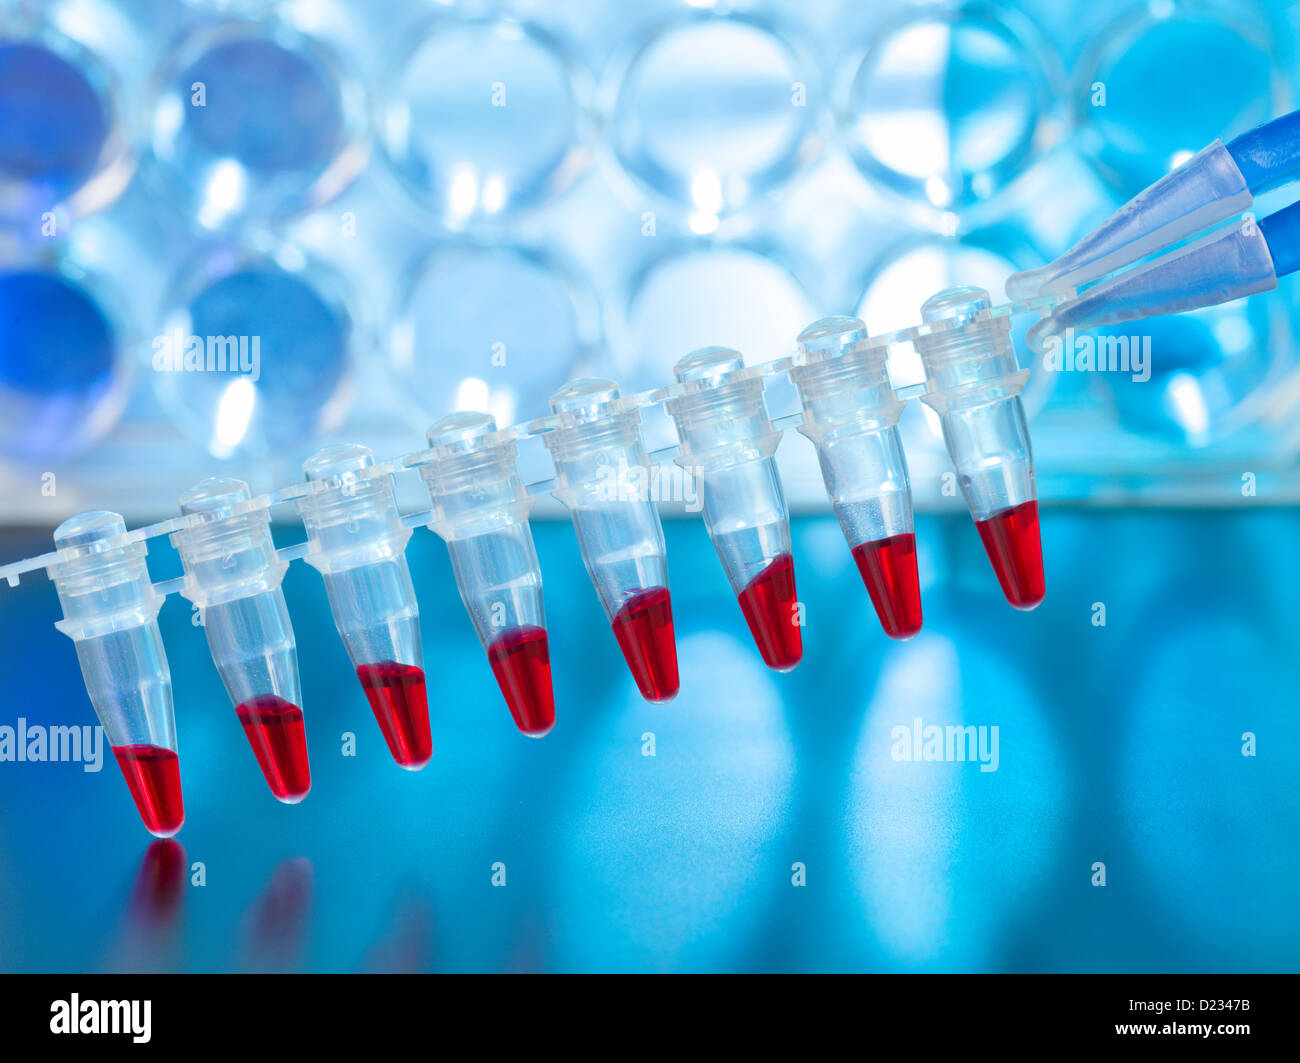 Blood samples to identify paternity using DNA - Stock Image